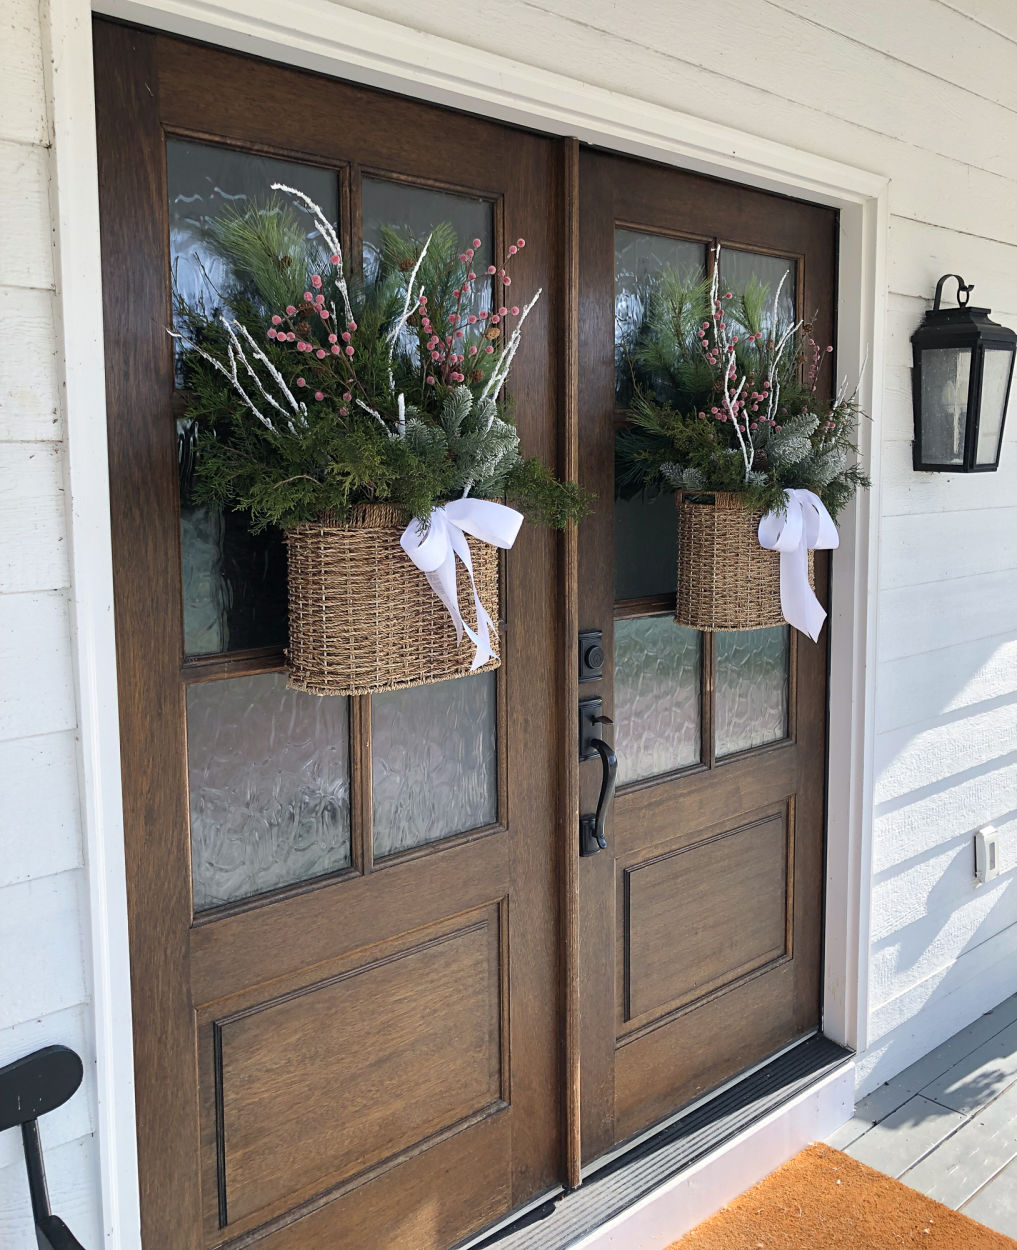 Beautiful baskets filled with greenery and berries replace traditional Christmas wreaths